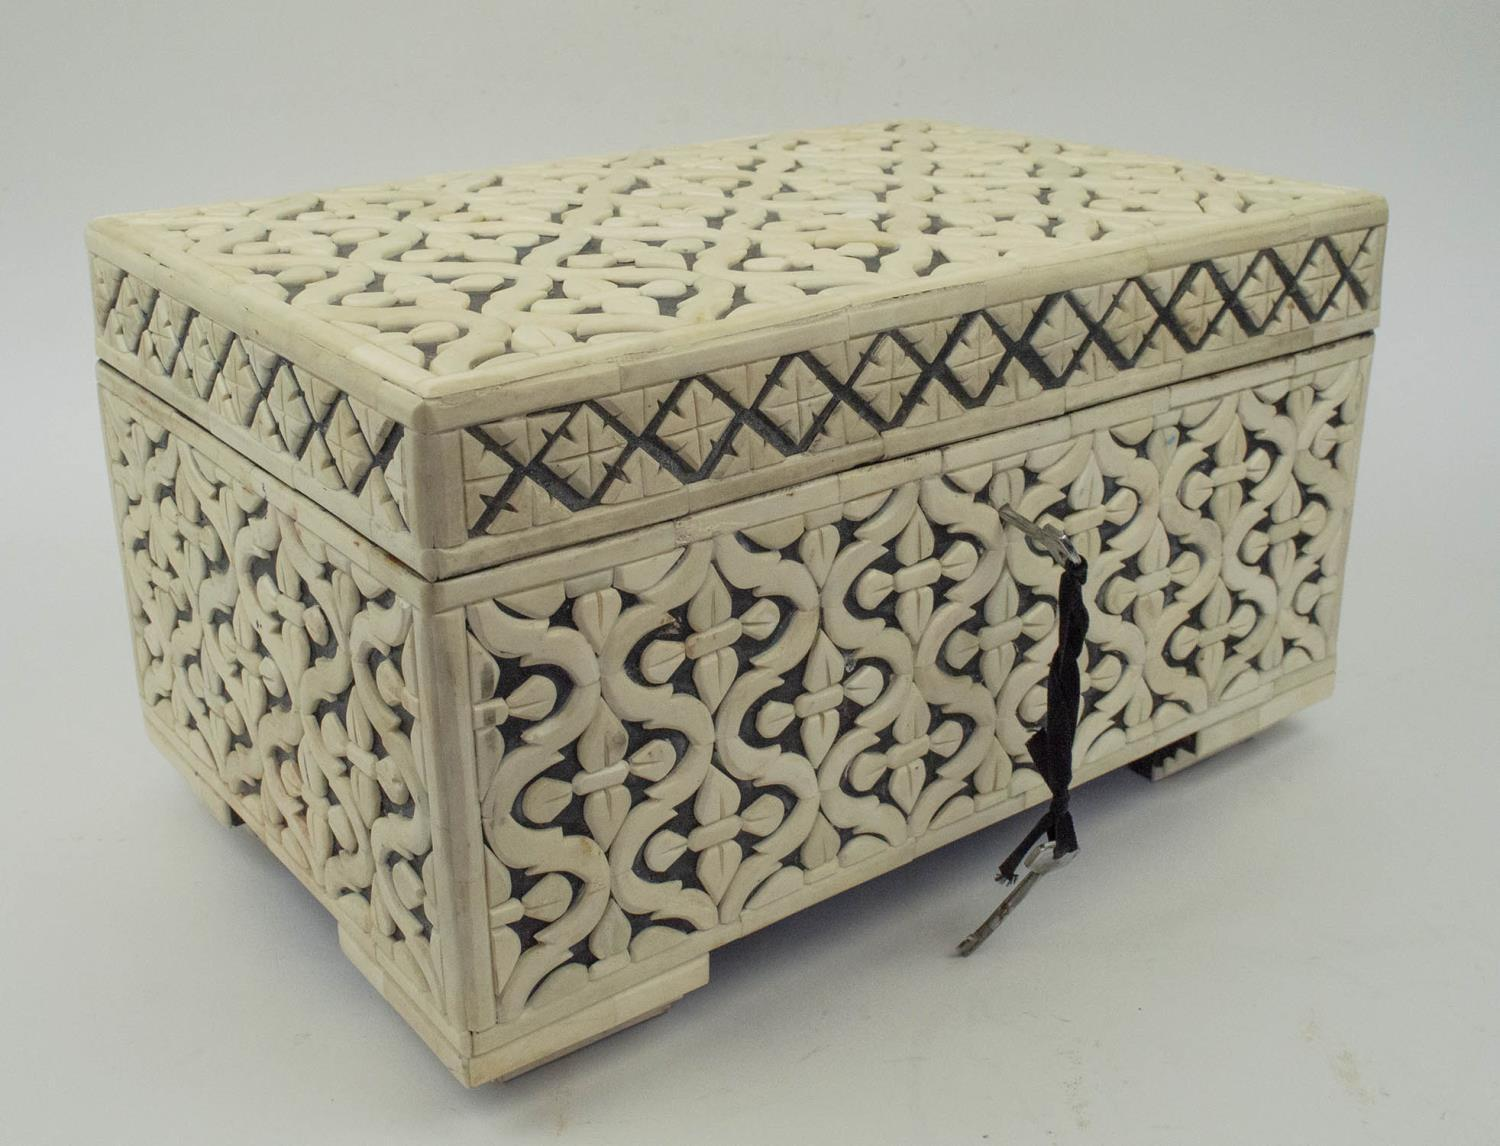 CASKET, bone geometric clad with hinged top and interior tray, 22cm H x 38cm x 25cm. - Image 2 of 7